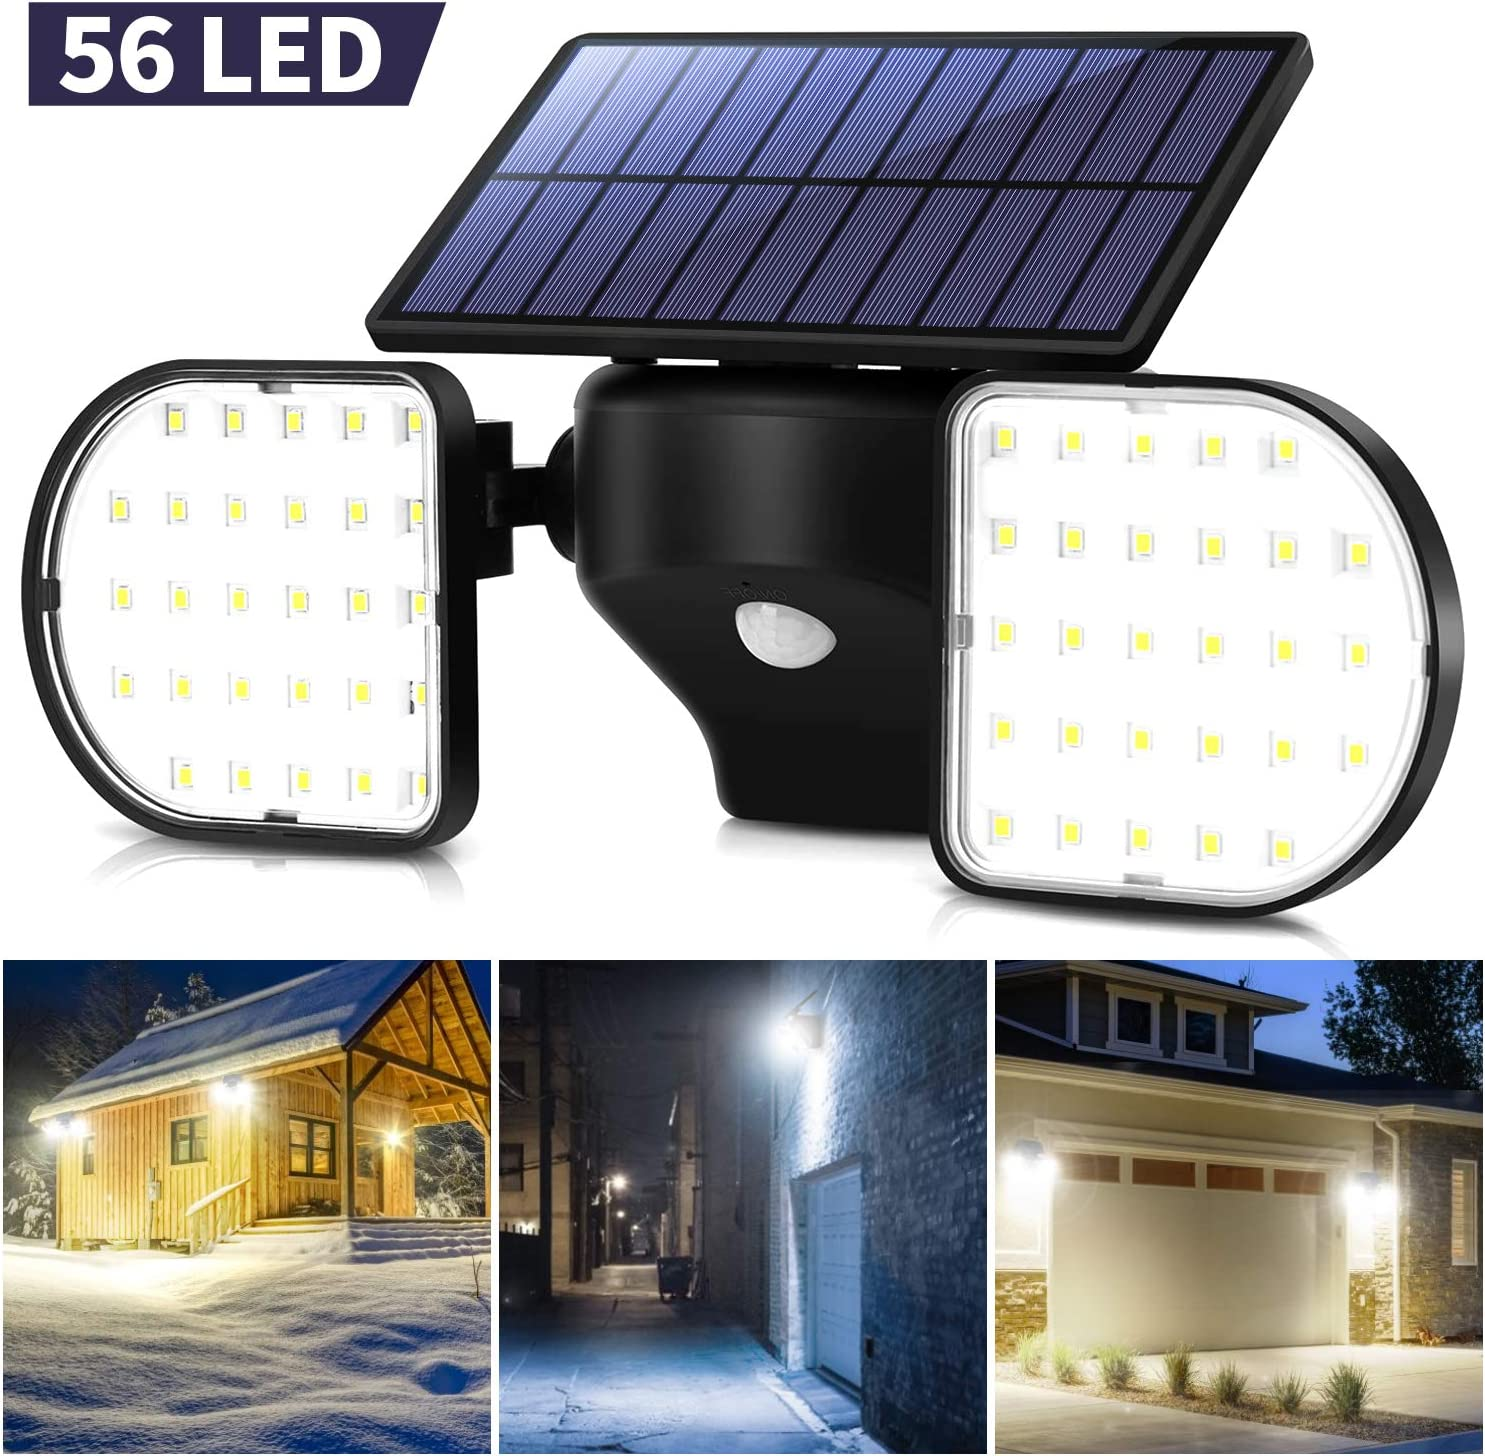 OUSFOT Solar Security Light Motion Sensor Outdoor 56 LED Solar Flood Light Dual Head Spotlights IP65 Waterproof 360°Adjustable Solar Wall Lights for Patio Front Door Yard Garden Garage Deck (Black)